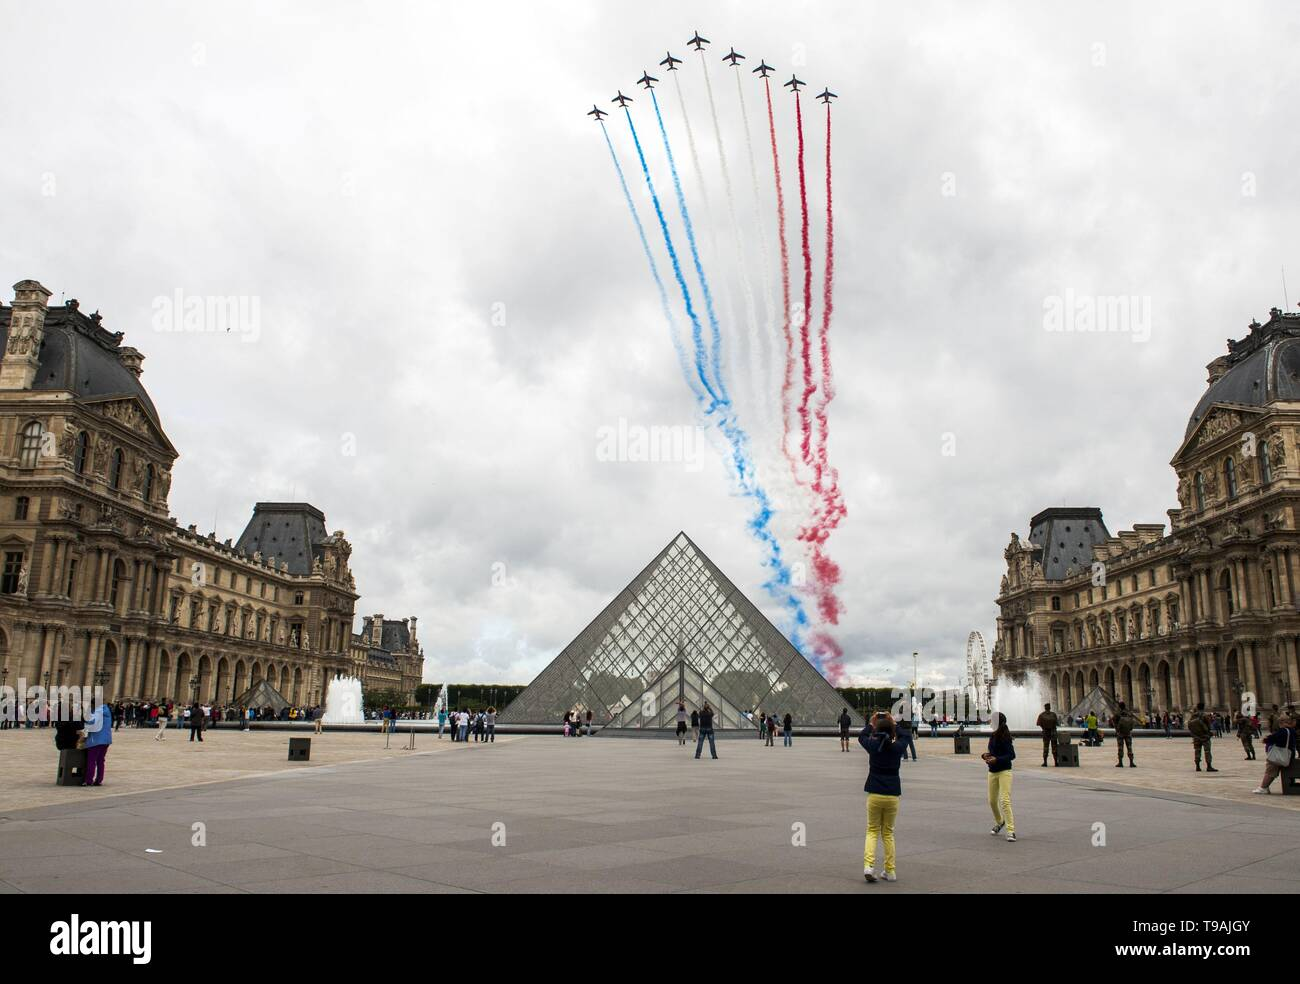 Beijing, China. 14th July, 2012. File photo taken on July 14, 2012 shows an airshow above the Louvre glass pyramid designed by world-renowned architect Ieoh Ming Pei in Paris, France. Ieoh Ming Pei, commonly known as I.M. Pei, died Thursday at age 102. Pei was born in Guangzhou of China and moved to the United States in 1935. He won a wide variety of prizes and awards in the field of architecture. Credit: Etienne Laurent/Xinhua/Alamy Live News - Stock Image